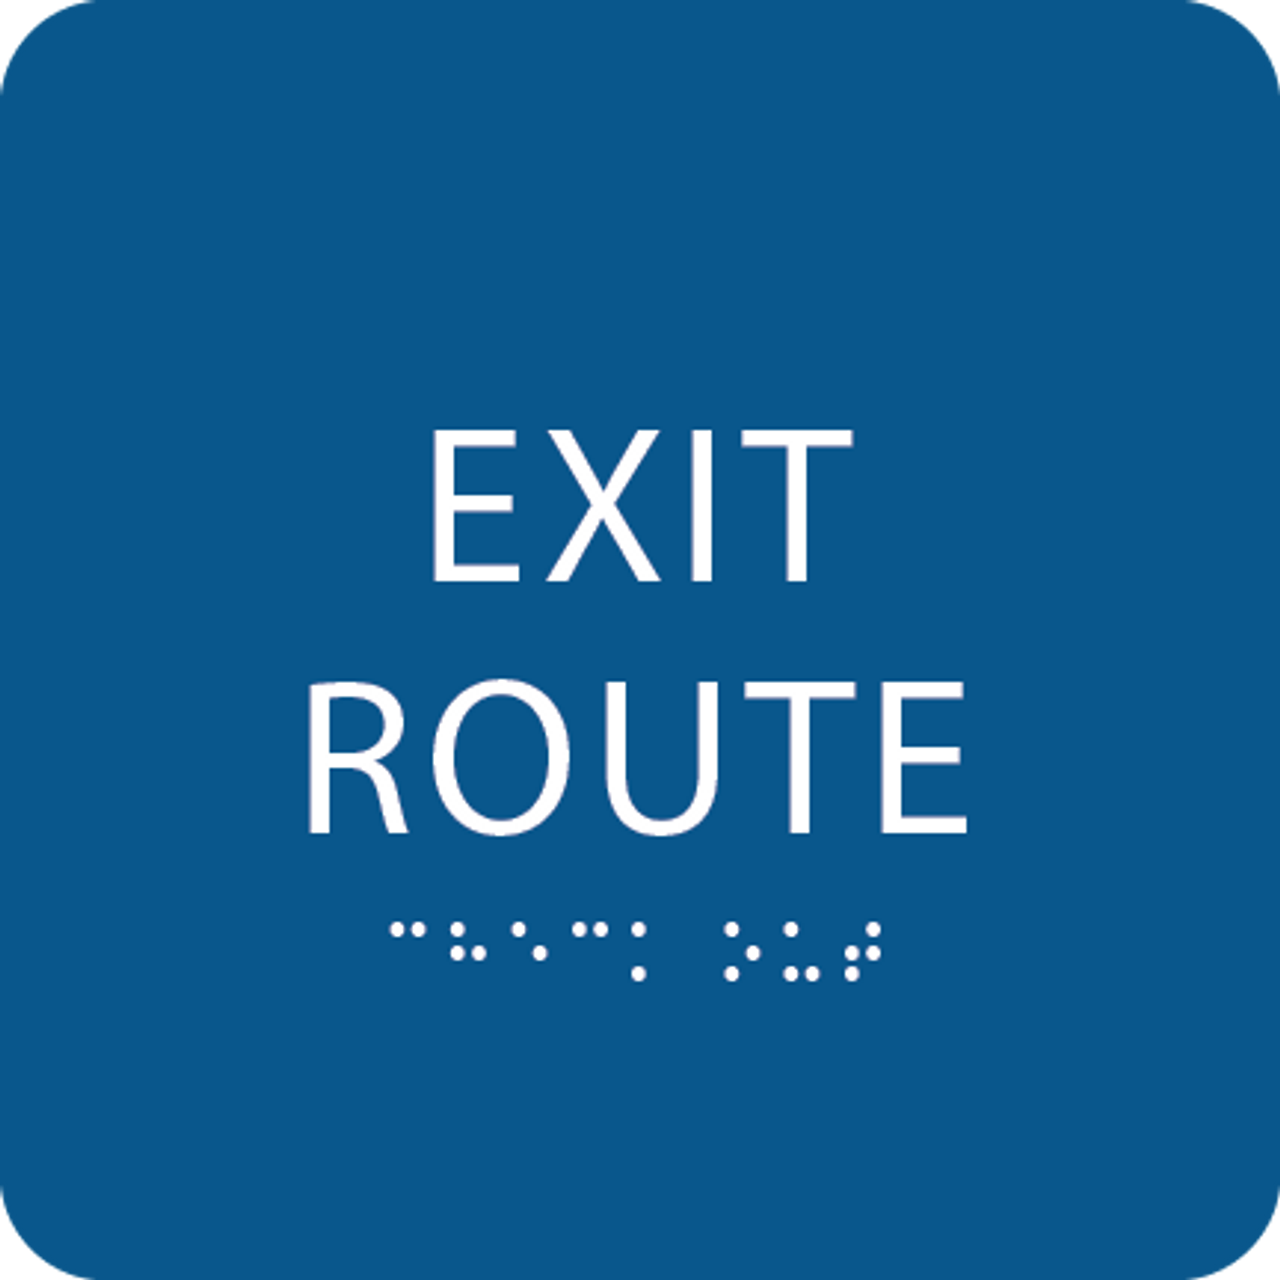 Royal Tactile Exit Route Sign